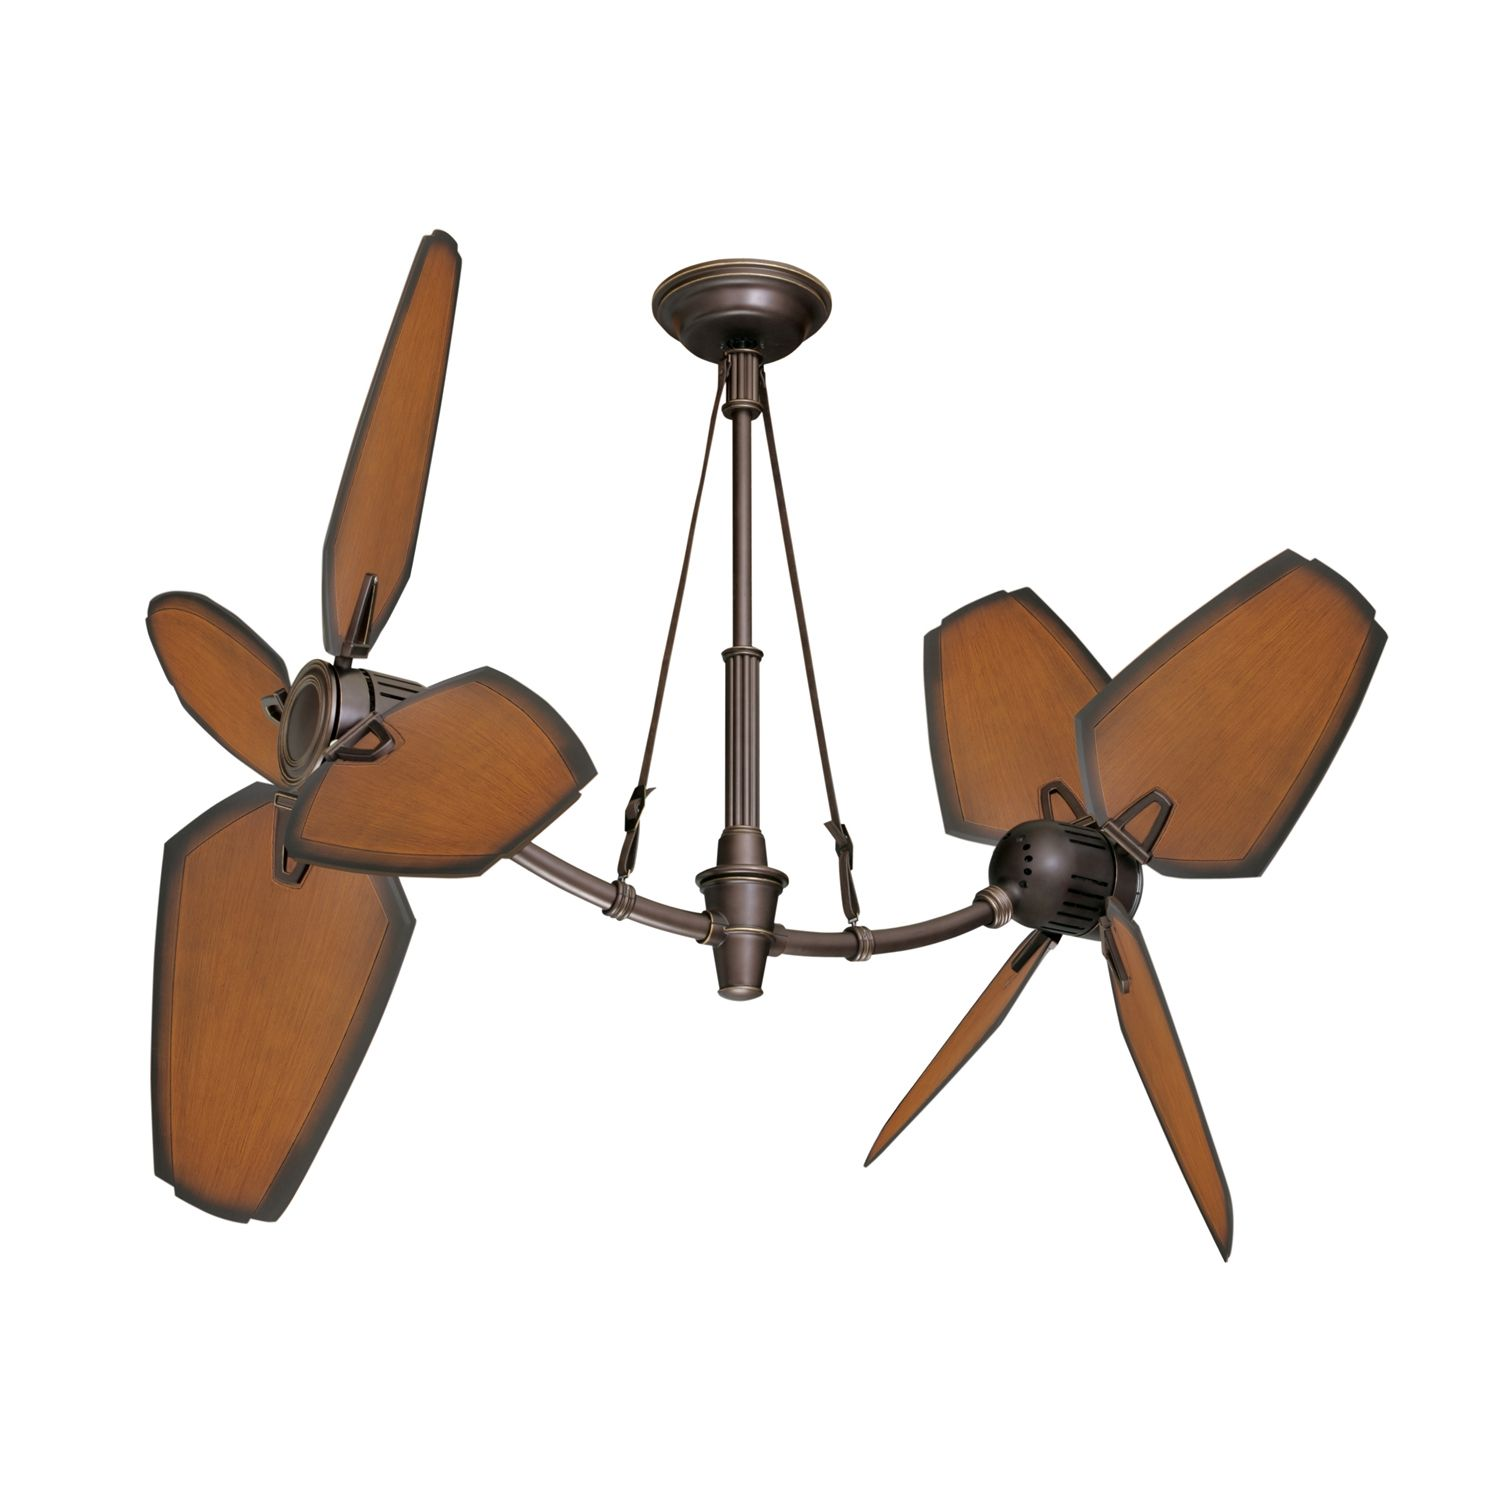 Emerson Electric CF3300ORH St Croix Indoor Ceiling Fan at ATG